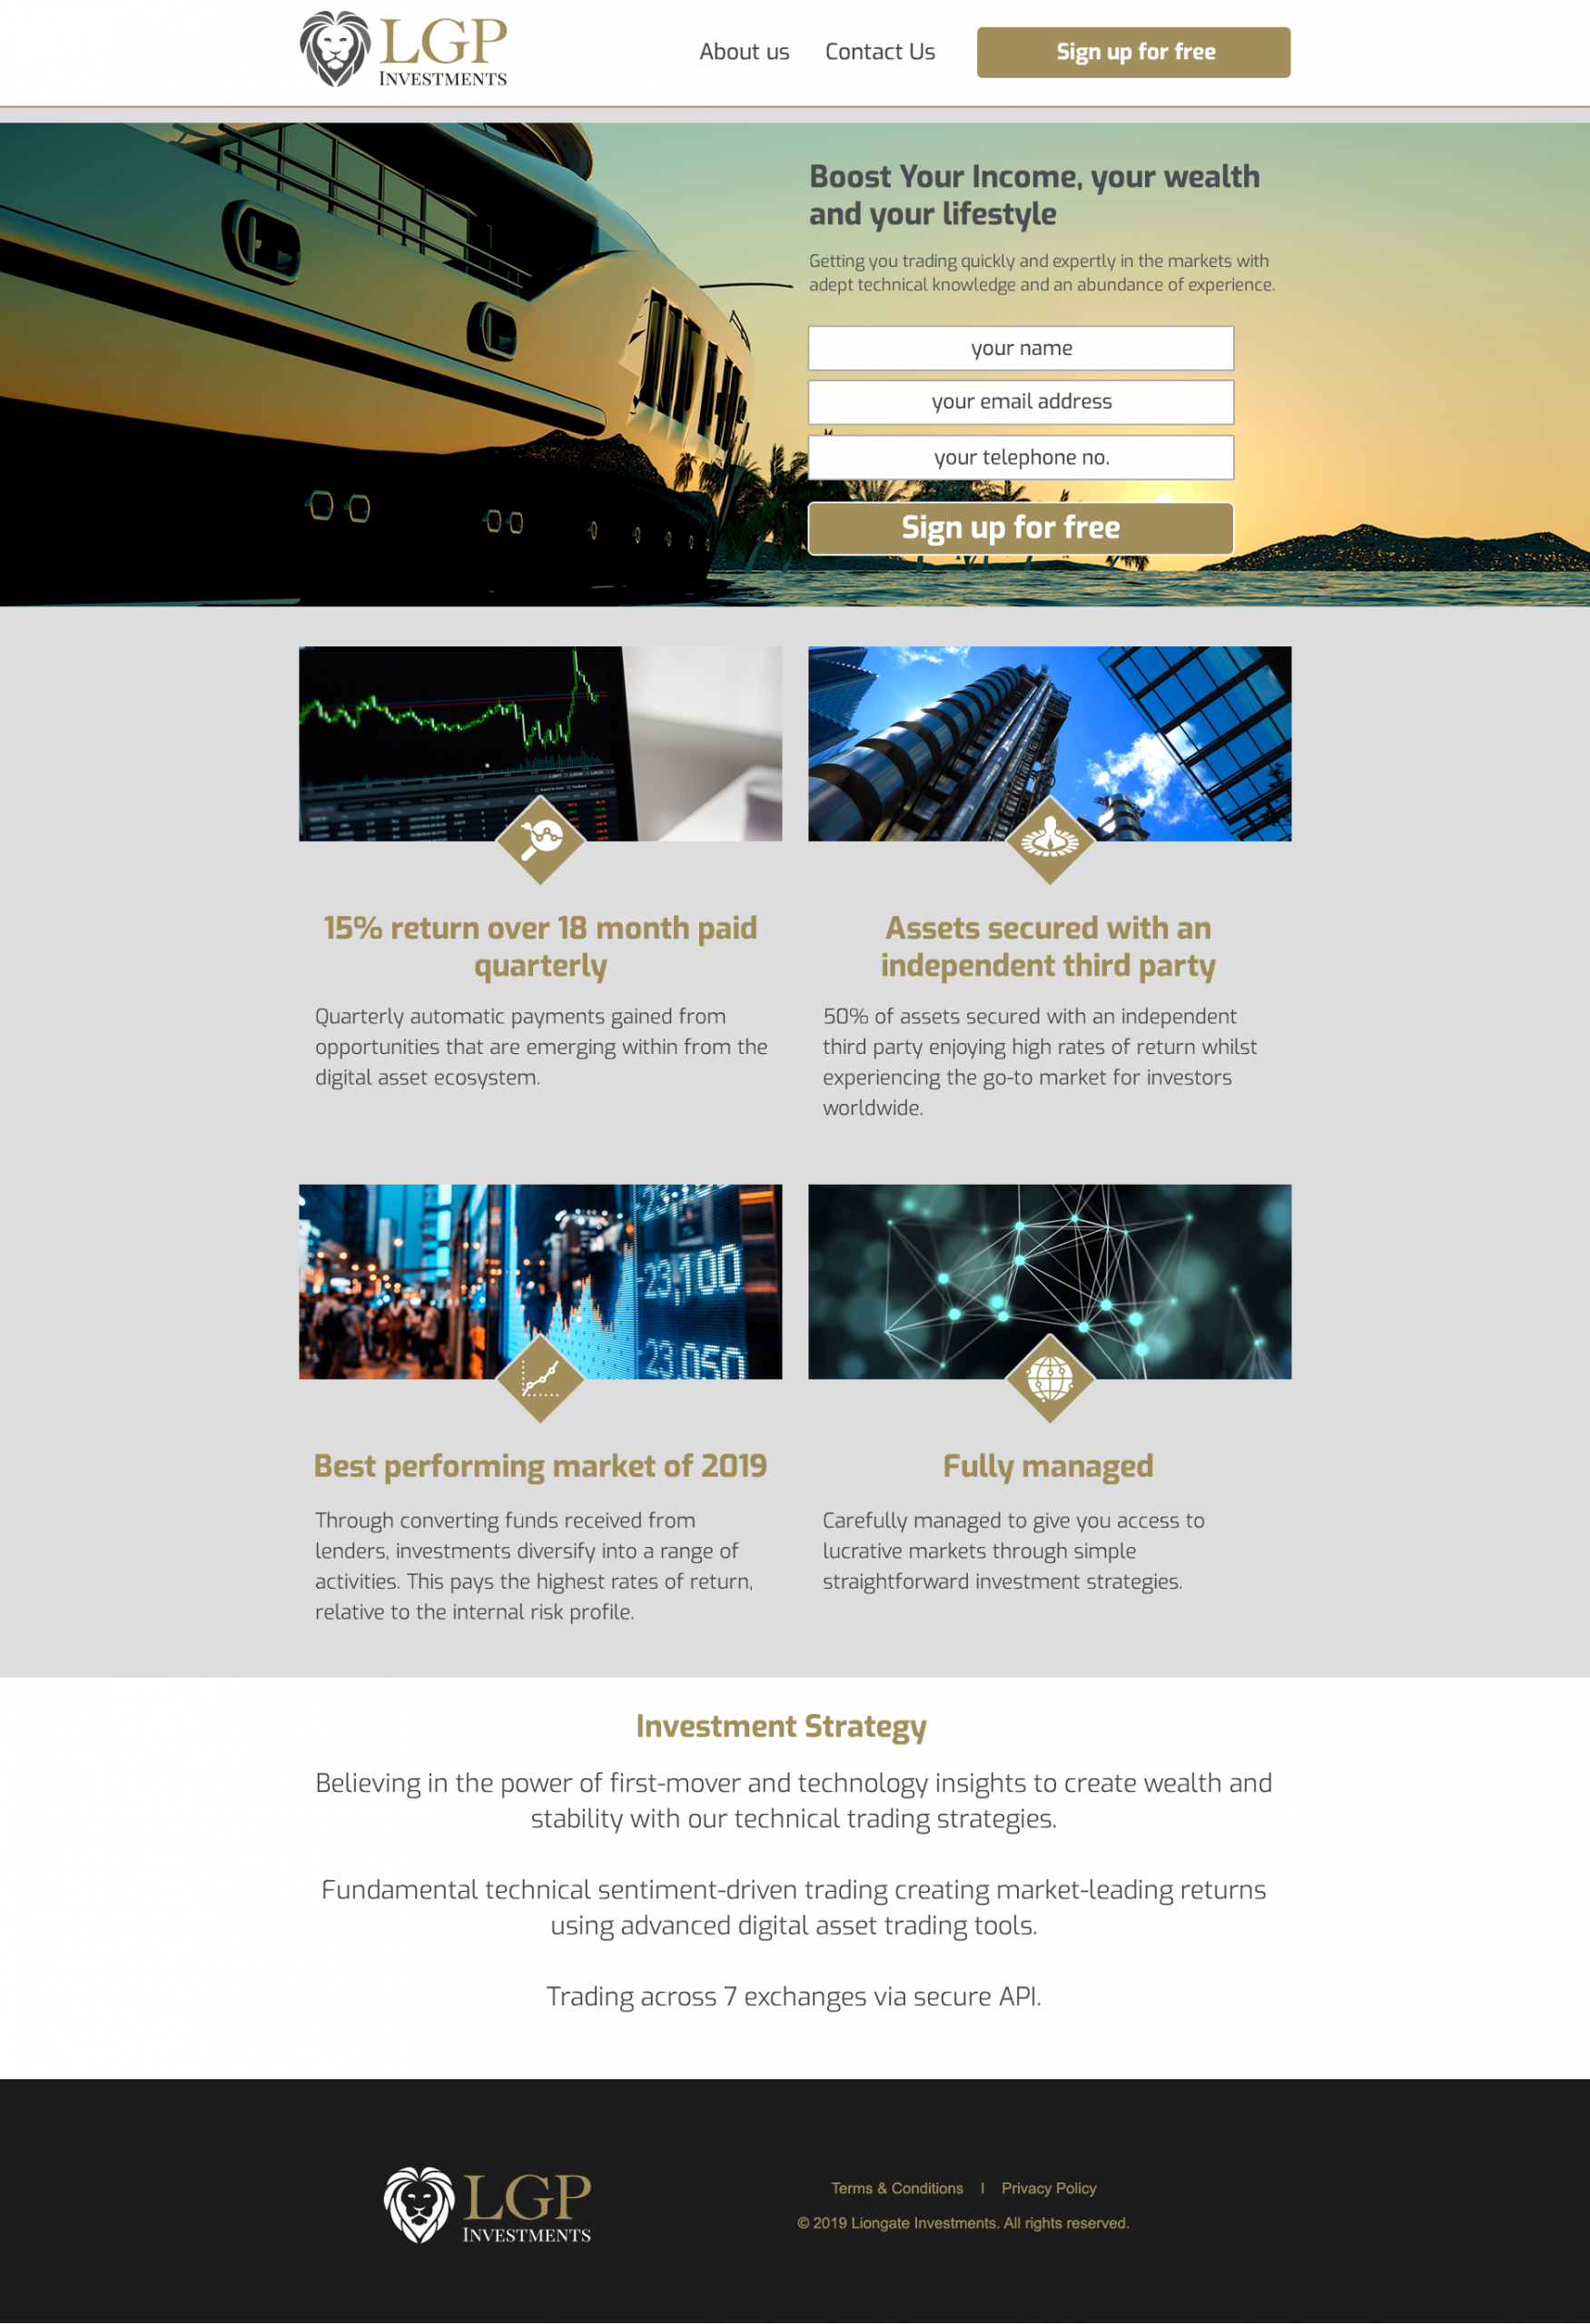 Liongate Investment website home page design